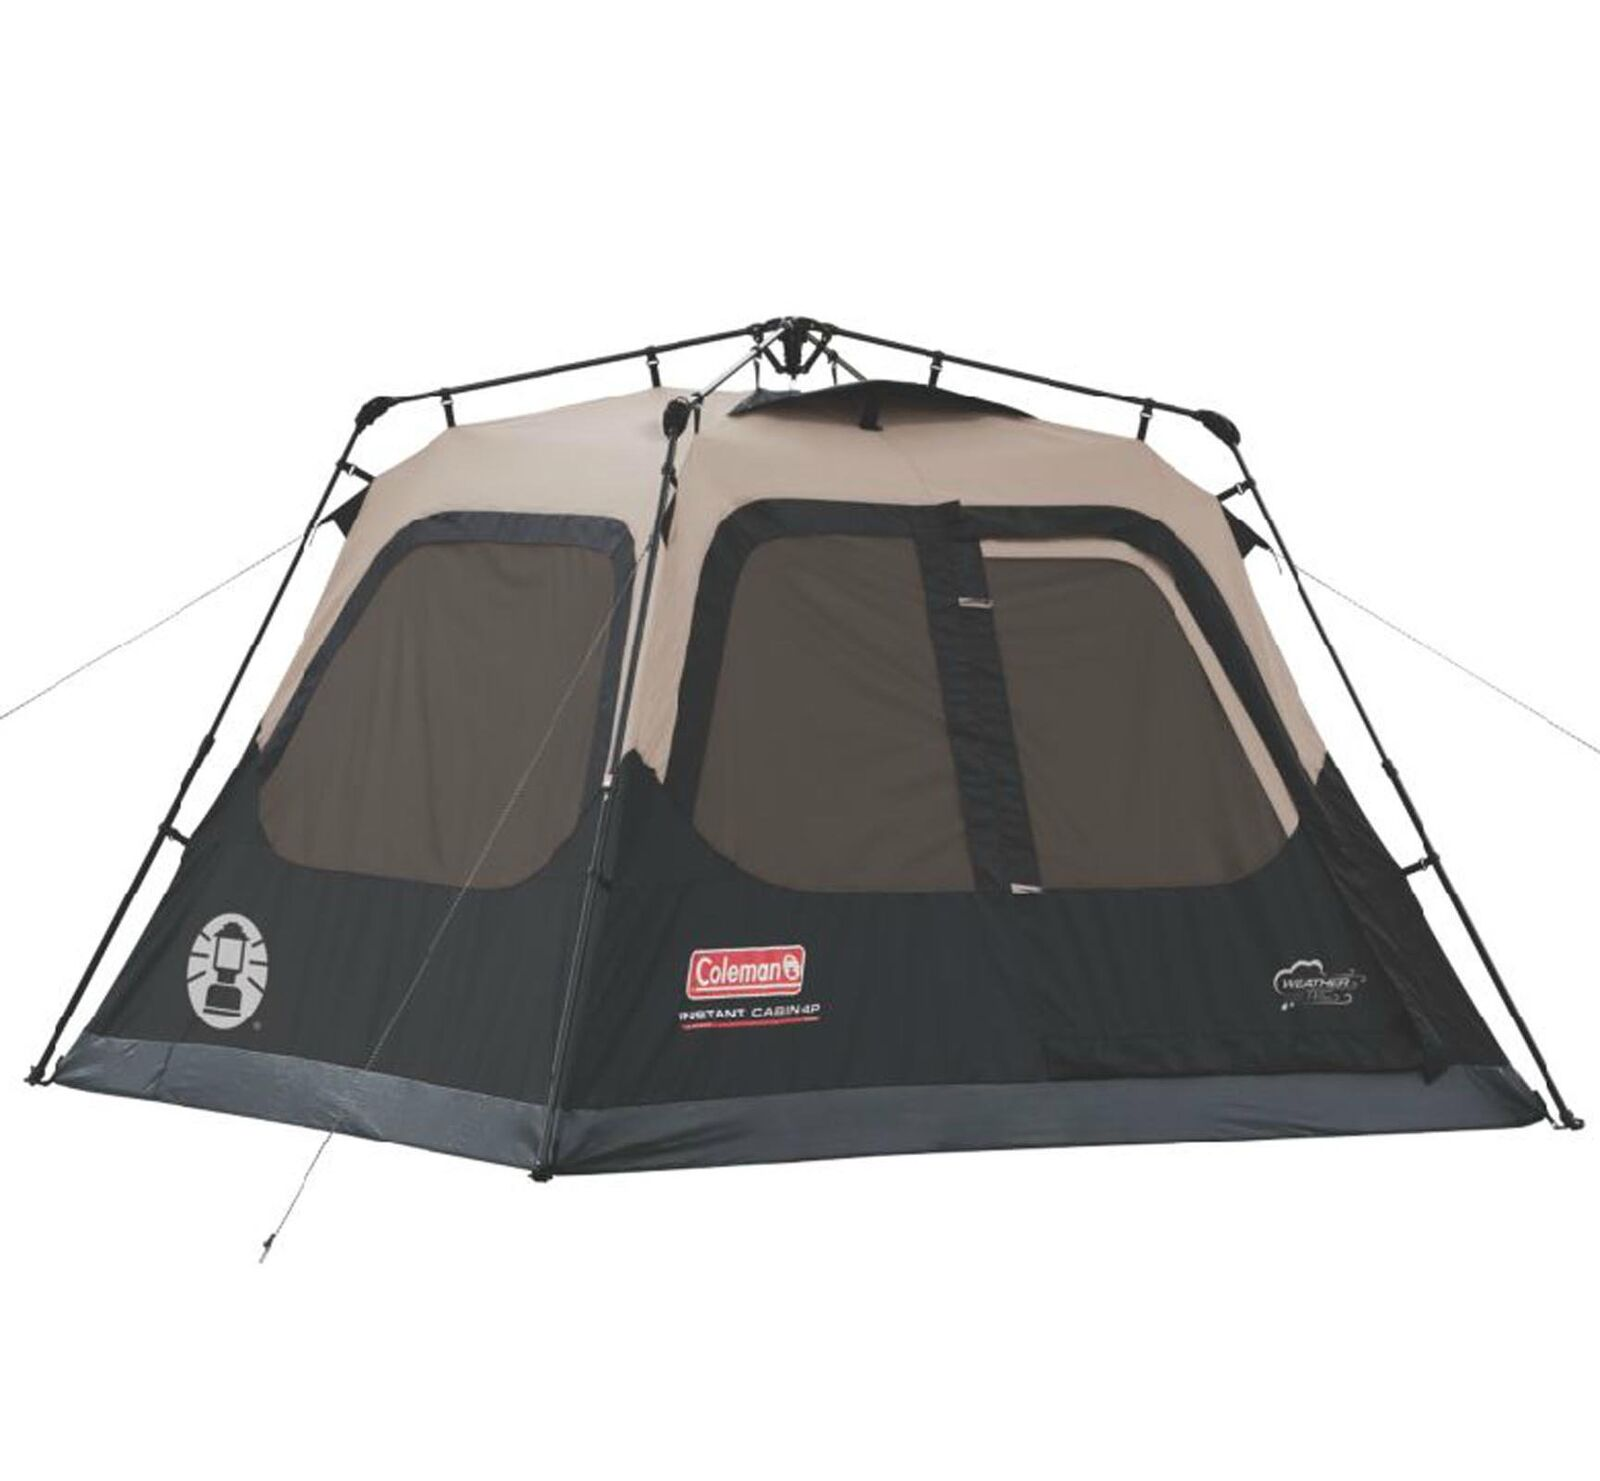 Coleman Outdoor Family Camping 4 Person 8 x  7 Foot Waterproof Instant Cabin Tent  healthy